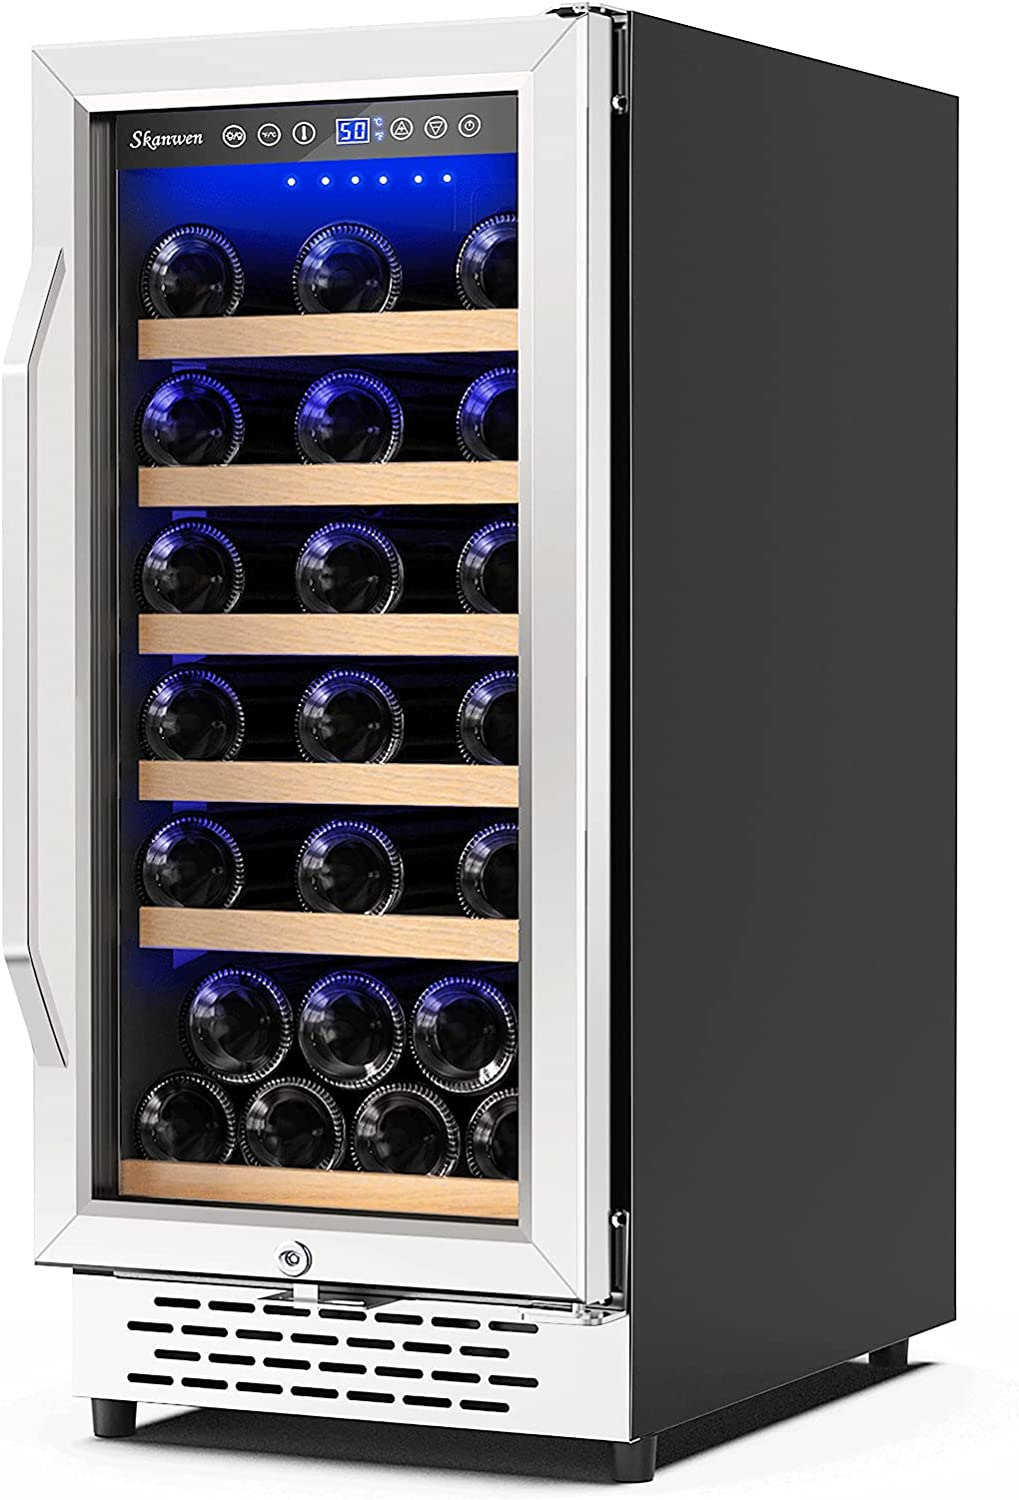 【Upgraded】SKANWEN 15 Inch Wine Cooler Refrigerators 32 Bottle Fast Cooling Low Noise and No Fog Wine Fridge with Professional Compressor Stainless Steel, Temp Memory Function, Built-in or Freestanding Wine Fridge 41°F-72°F